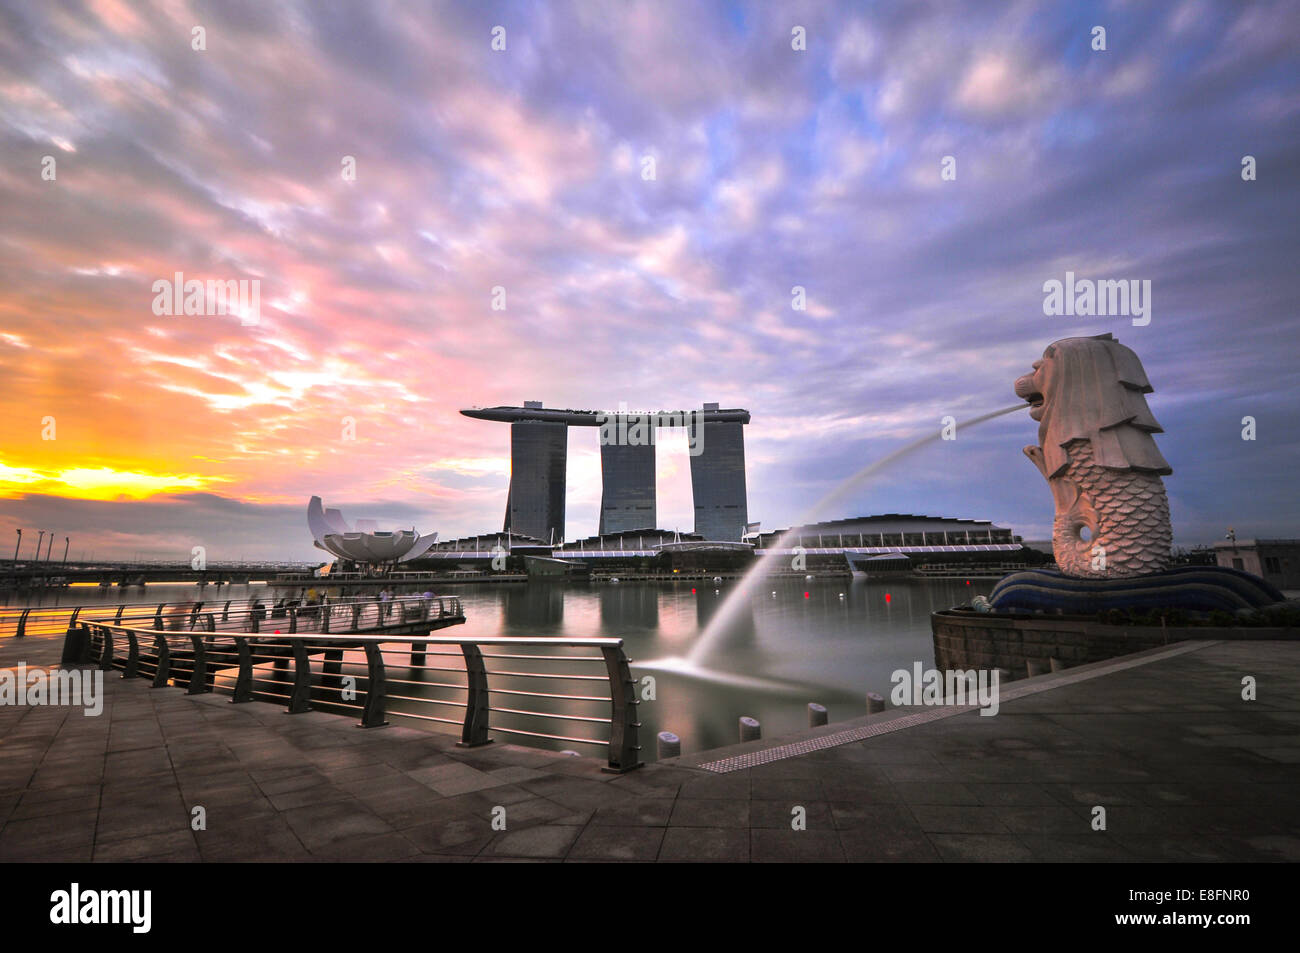 Singapore, Merlion, View of Merlion Statue - Stock Image